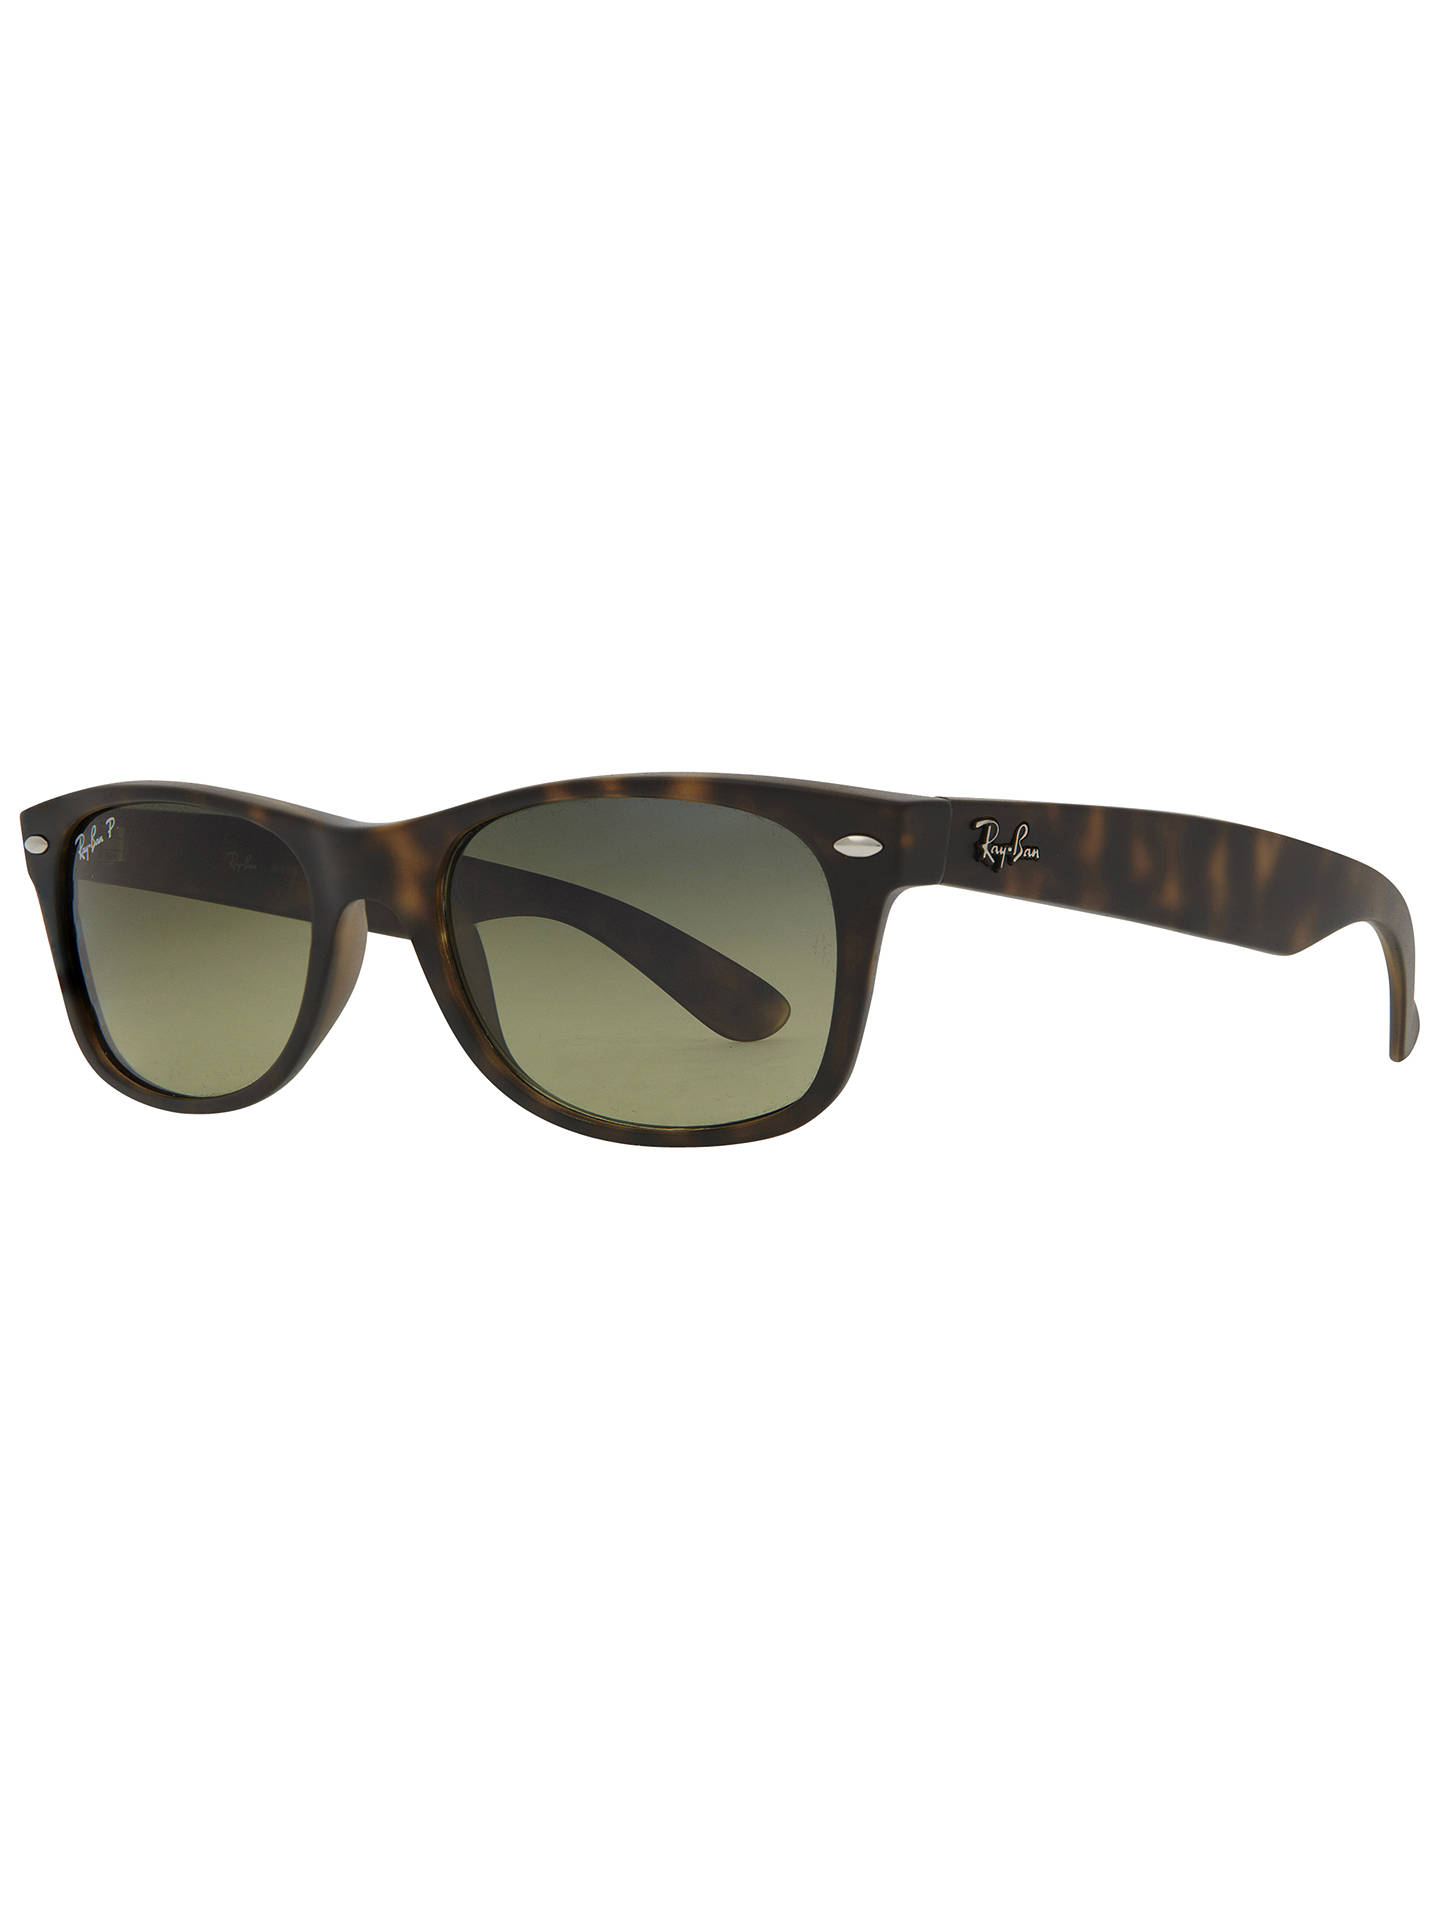 40633025f Buy Ray-Ban RB2132 Men's New Wayfarer Polarised Sunglasses, Matte  Havana/Green Gradient ...